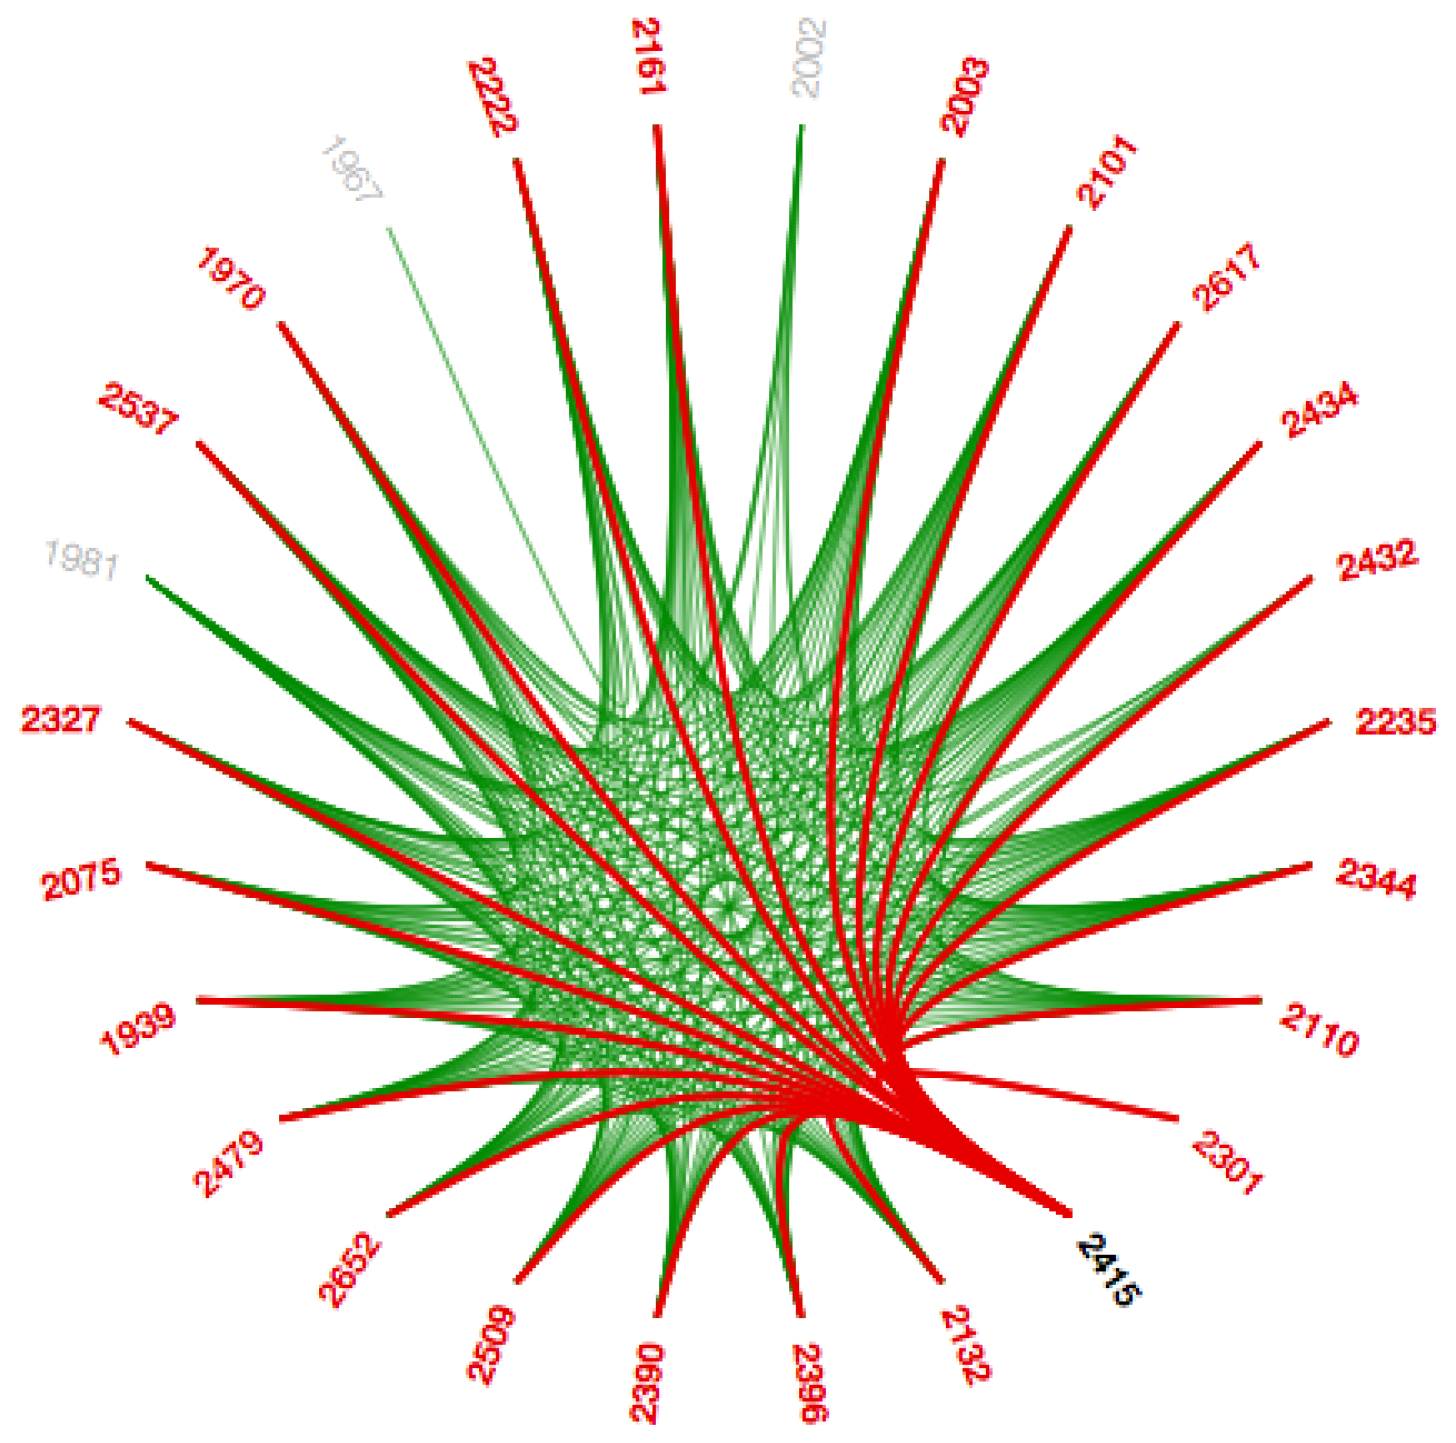 BDCC | Free Full-Text | VizTract: Visualization of Complex